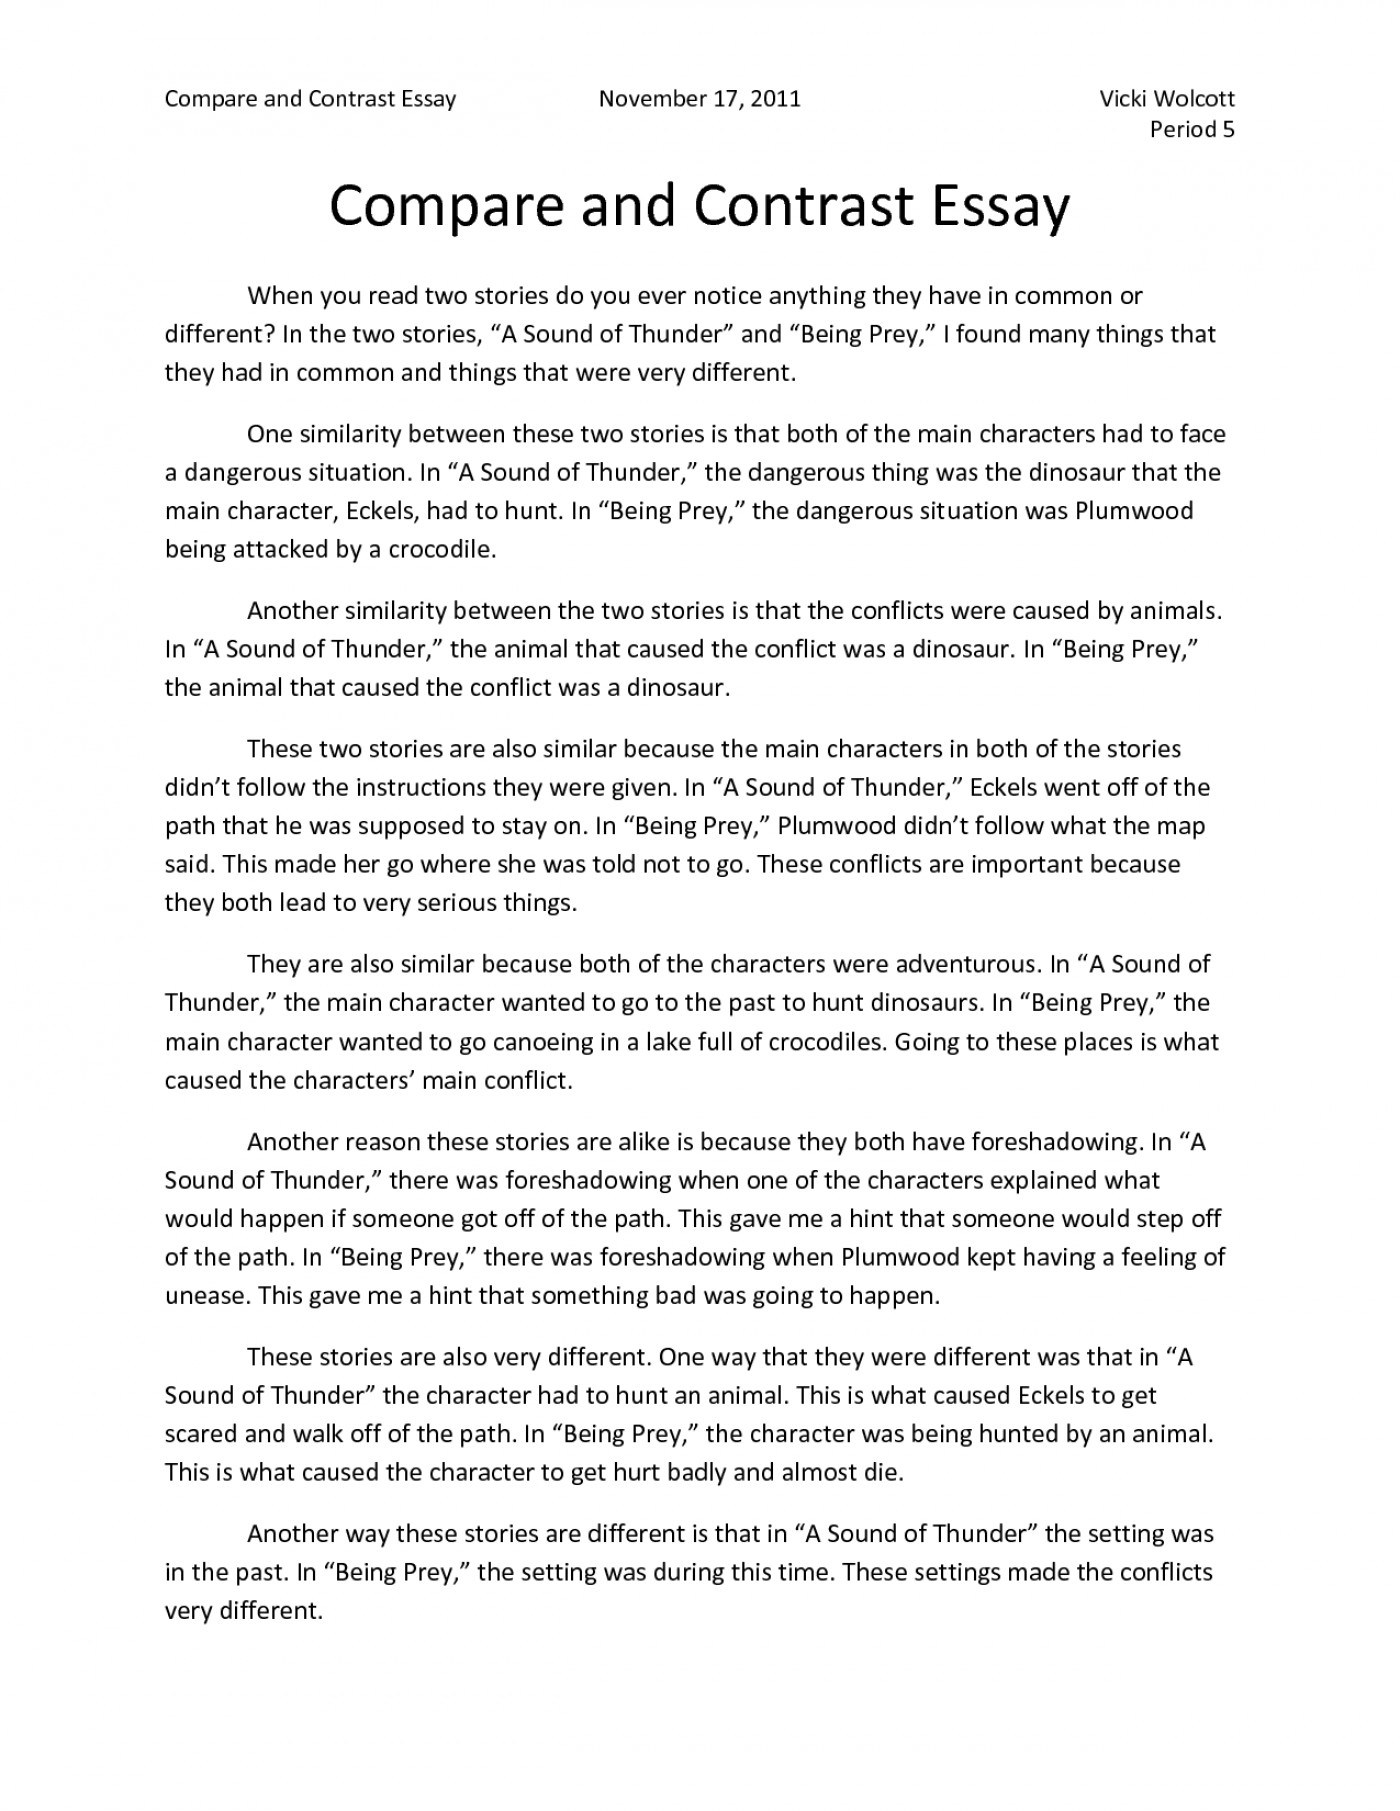 003 Perfect Essays Compare And Contrast Essay Introduction Example How To Write College Striking Examples 7th Grade Comparison Free Pdf Elementary 1400